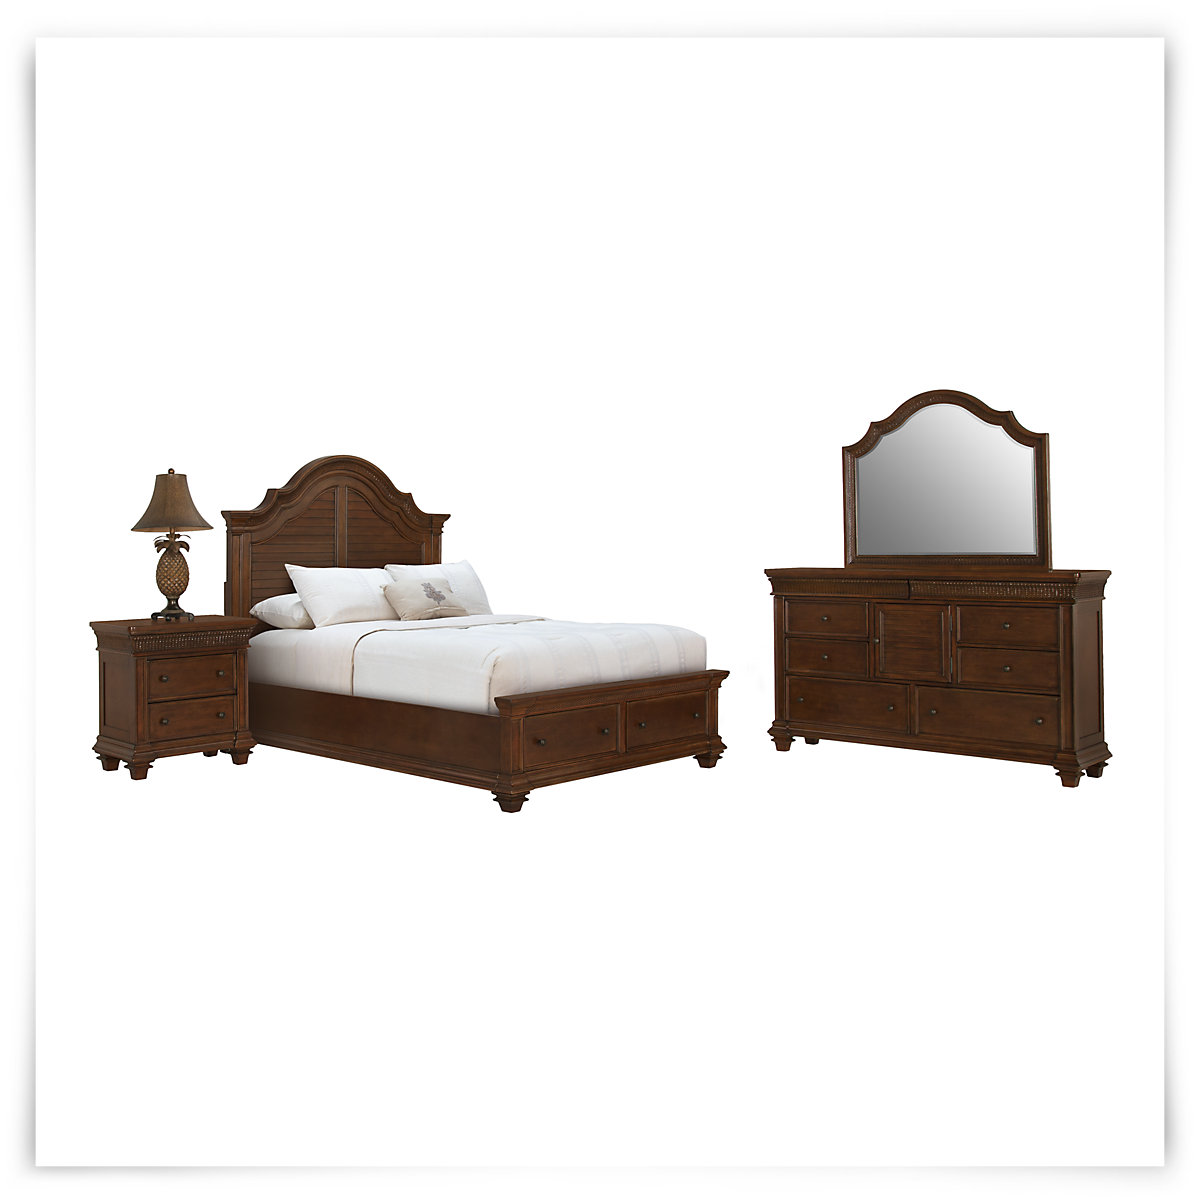 City furniture antigua mid tone panel storage bedroom for Antigua wicker chaise